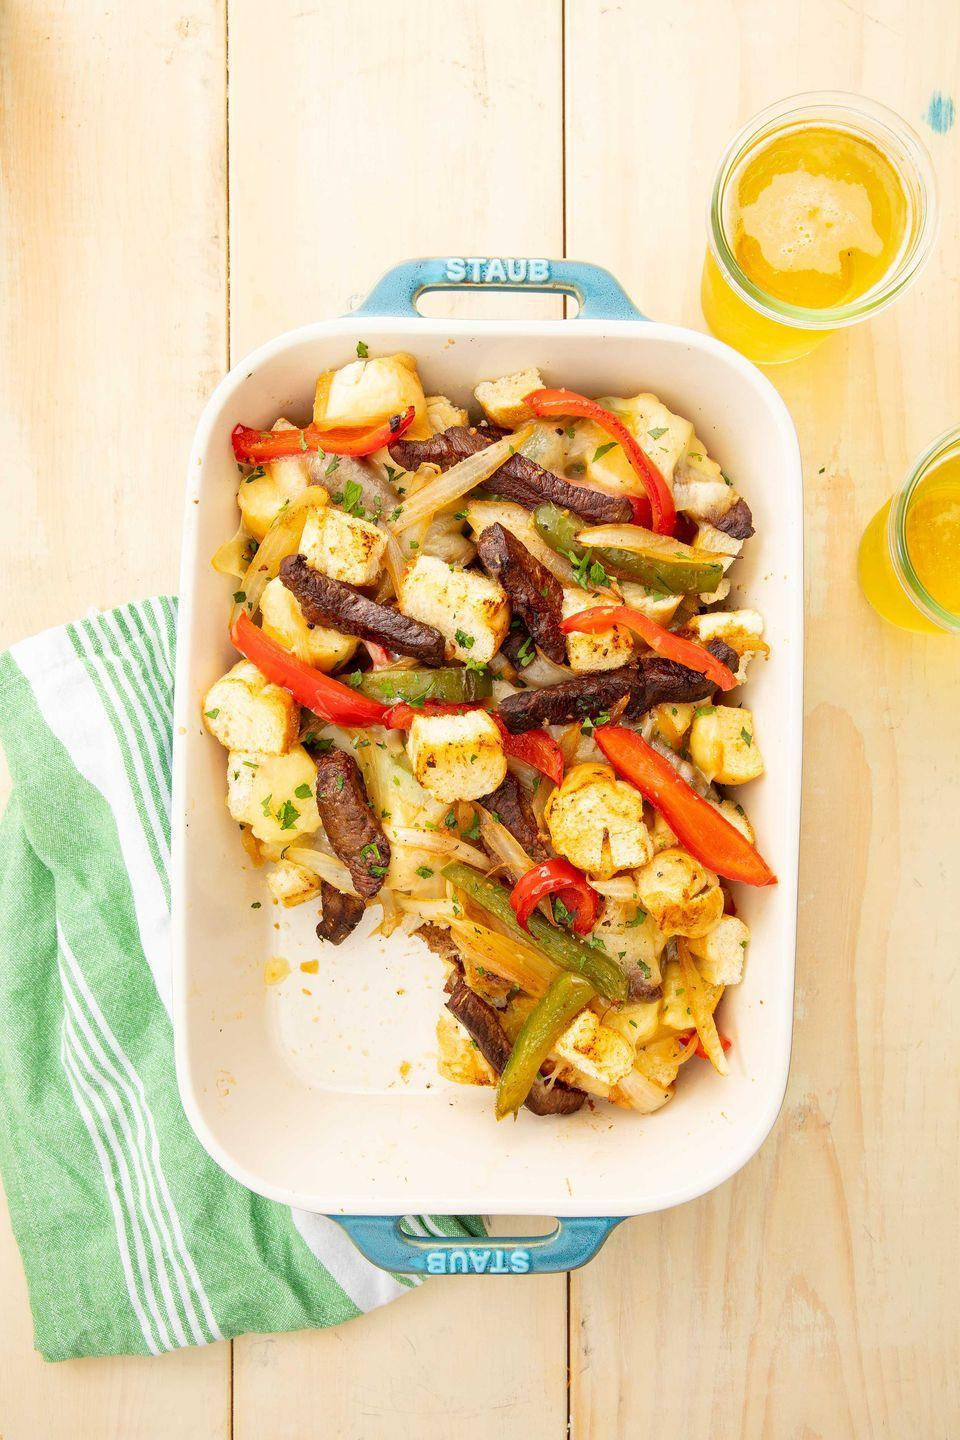 """<p>You have to try the casserole version of the legendary sandwich.</p><p>Get the recipe from <a href=""""https://www.delish.com/cooking/recipe-ideas/recipes/a54335/philly-cheesesteak-casserole-recipe/"""" rel=""""nofollow noopener"""" target=""""_blank"""" data-ylk=""""slk:Delish"""" class=""""link rapid-noclick-resp"""">Delish</a>.</p>"""